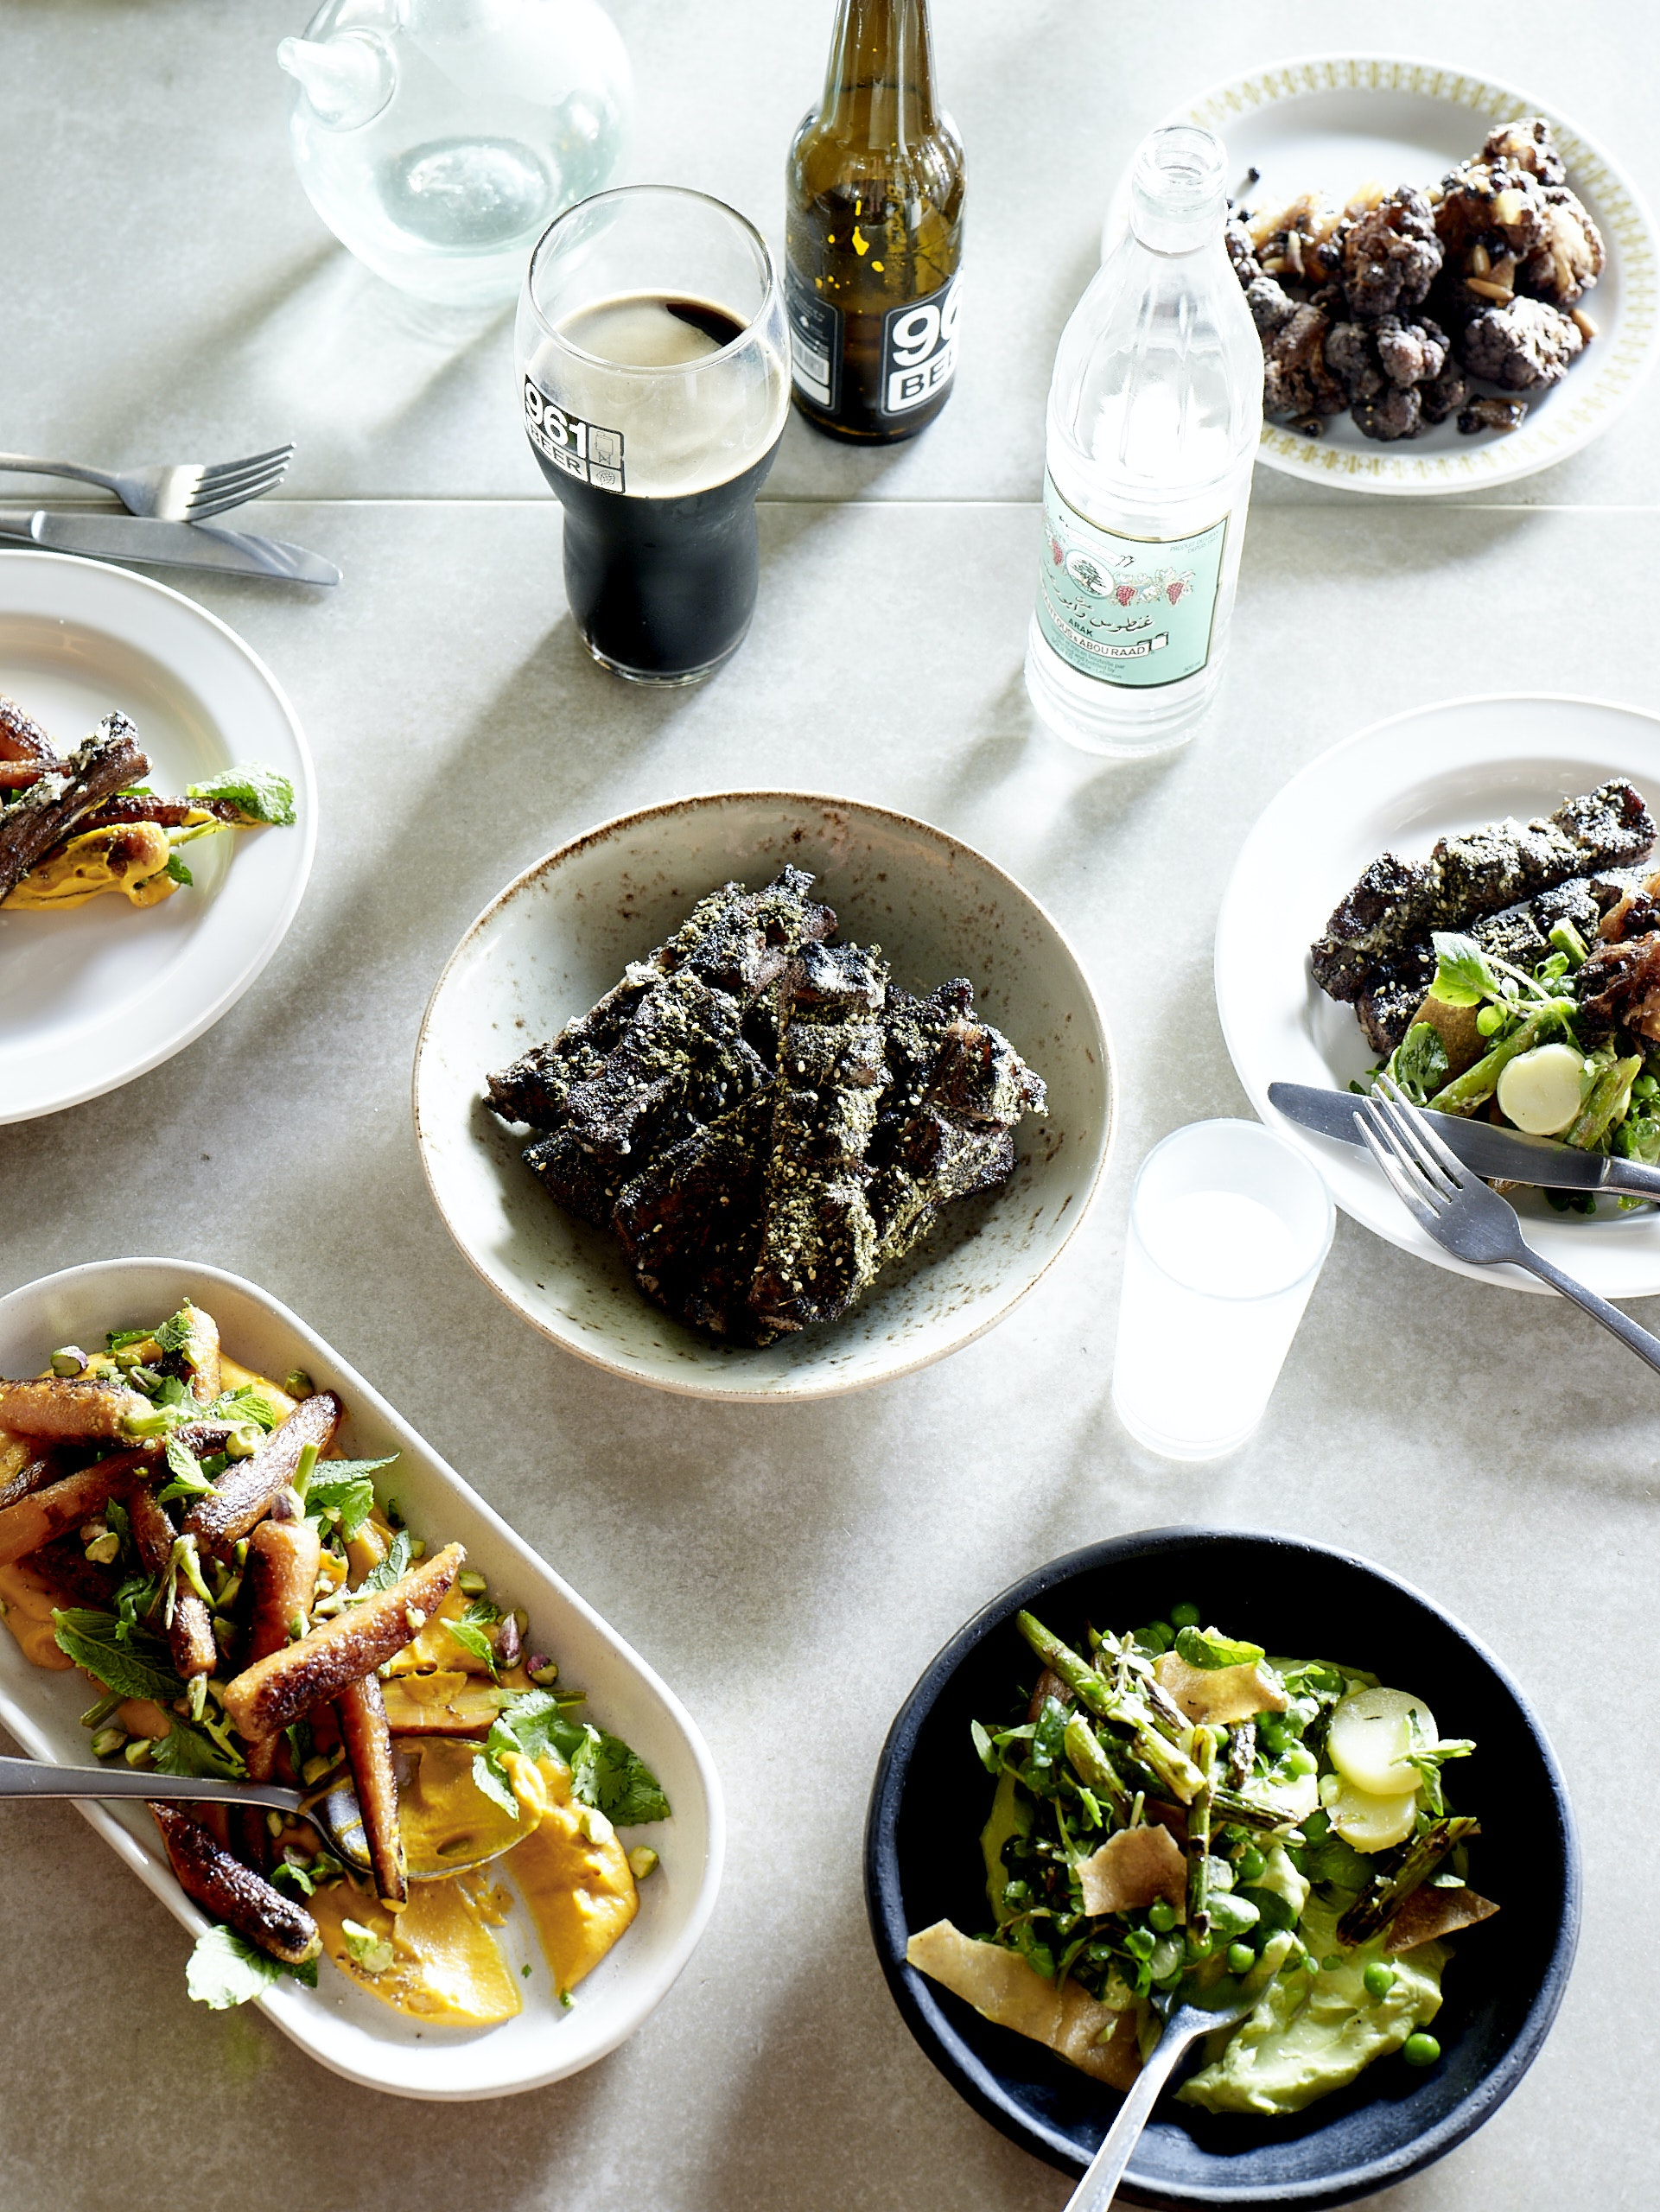 At Rumi, chef Joseph Abboud serves za'atar-spiced lamb ribs, fried cauliflower, roasted carrots, and asparagus salad.